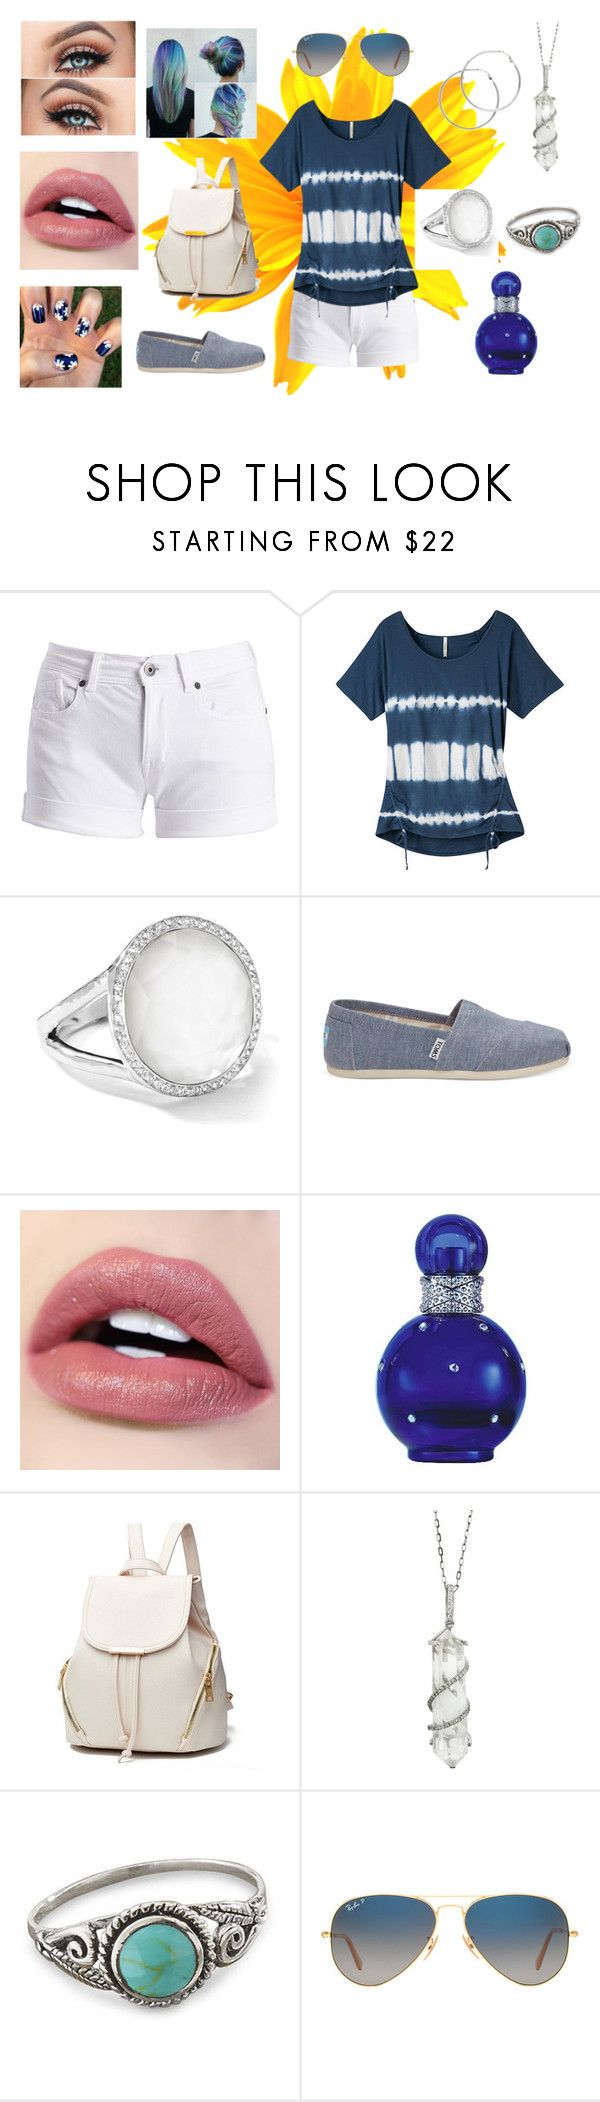 """Spring Trip"" by catmarsalia on Polyvore featuring Barbour International, Mountain Khakis, Ippolita, TOMS, Britney Spears, Sharon Khazzam, Ray-Ban and Melissa Odabash"